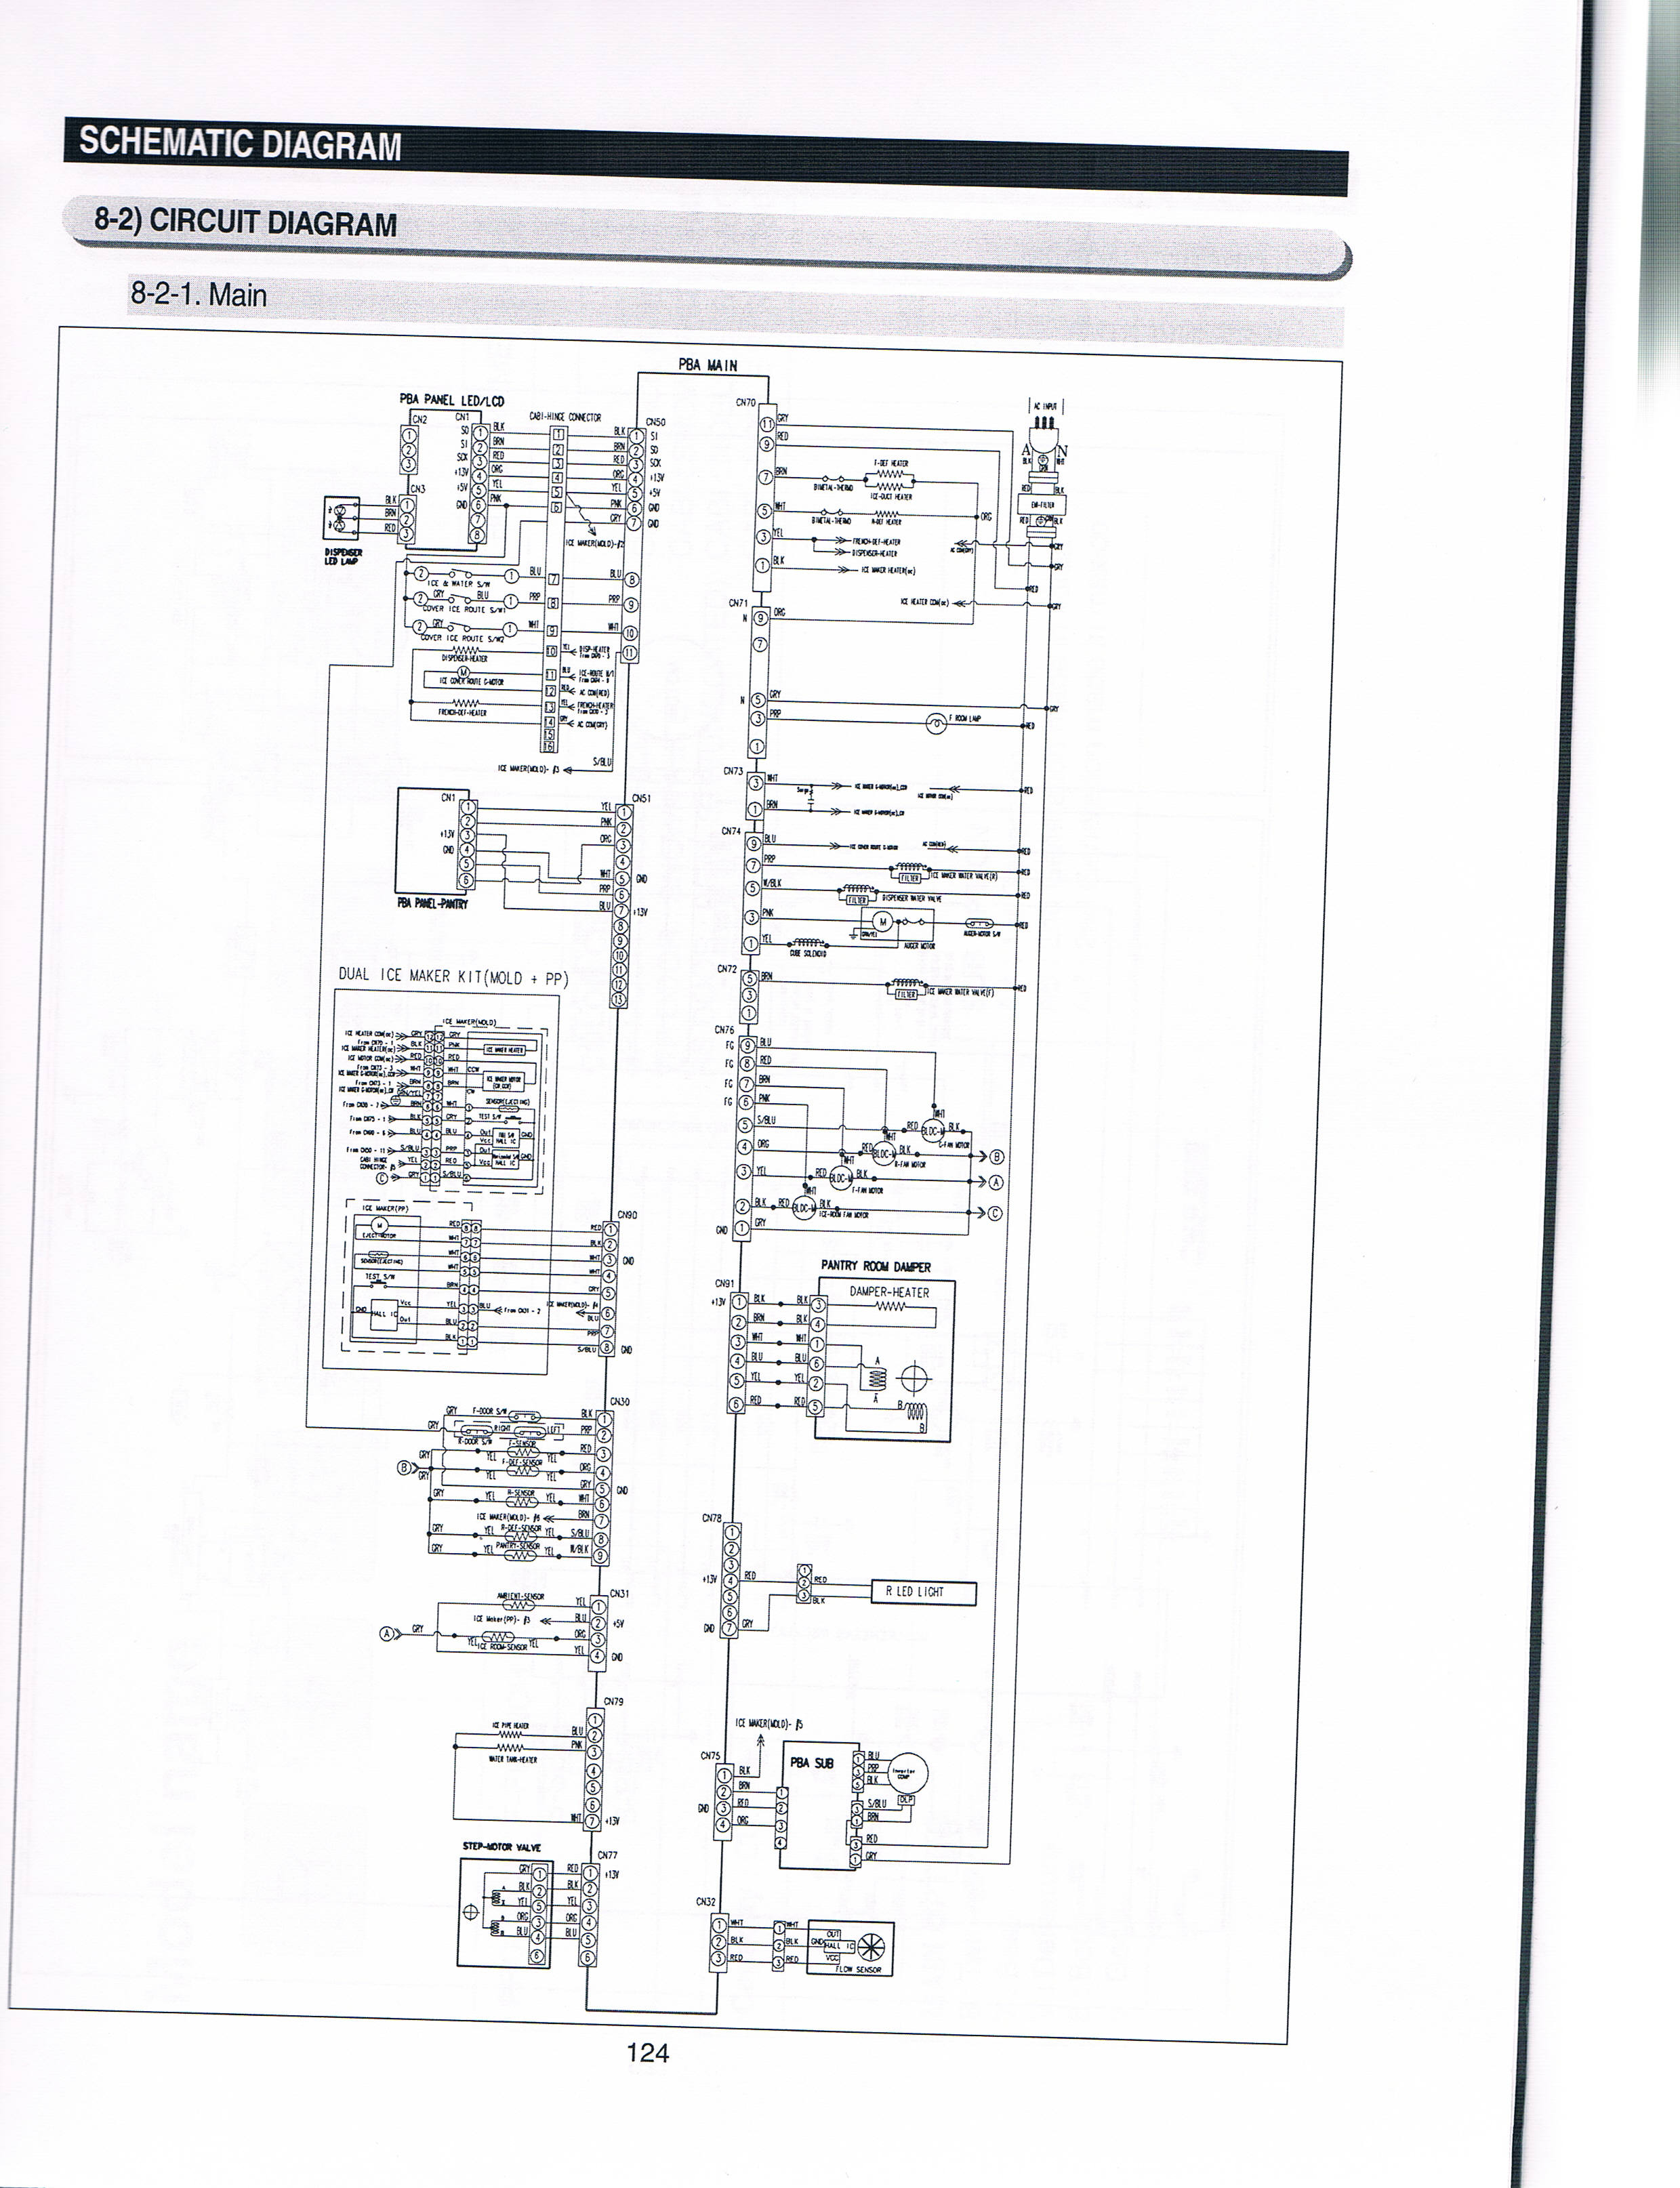 11 Pin Relay Socket Wiring Diagram moreover 8 Pin Time Delay Relay Wiring Diagram in addition Ice Cube 11 Pin Relay Wiring Diagram together with S13 Engine Harness Diagram likewise GR220VACOCTDPDT. on octal relay wiring diagram